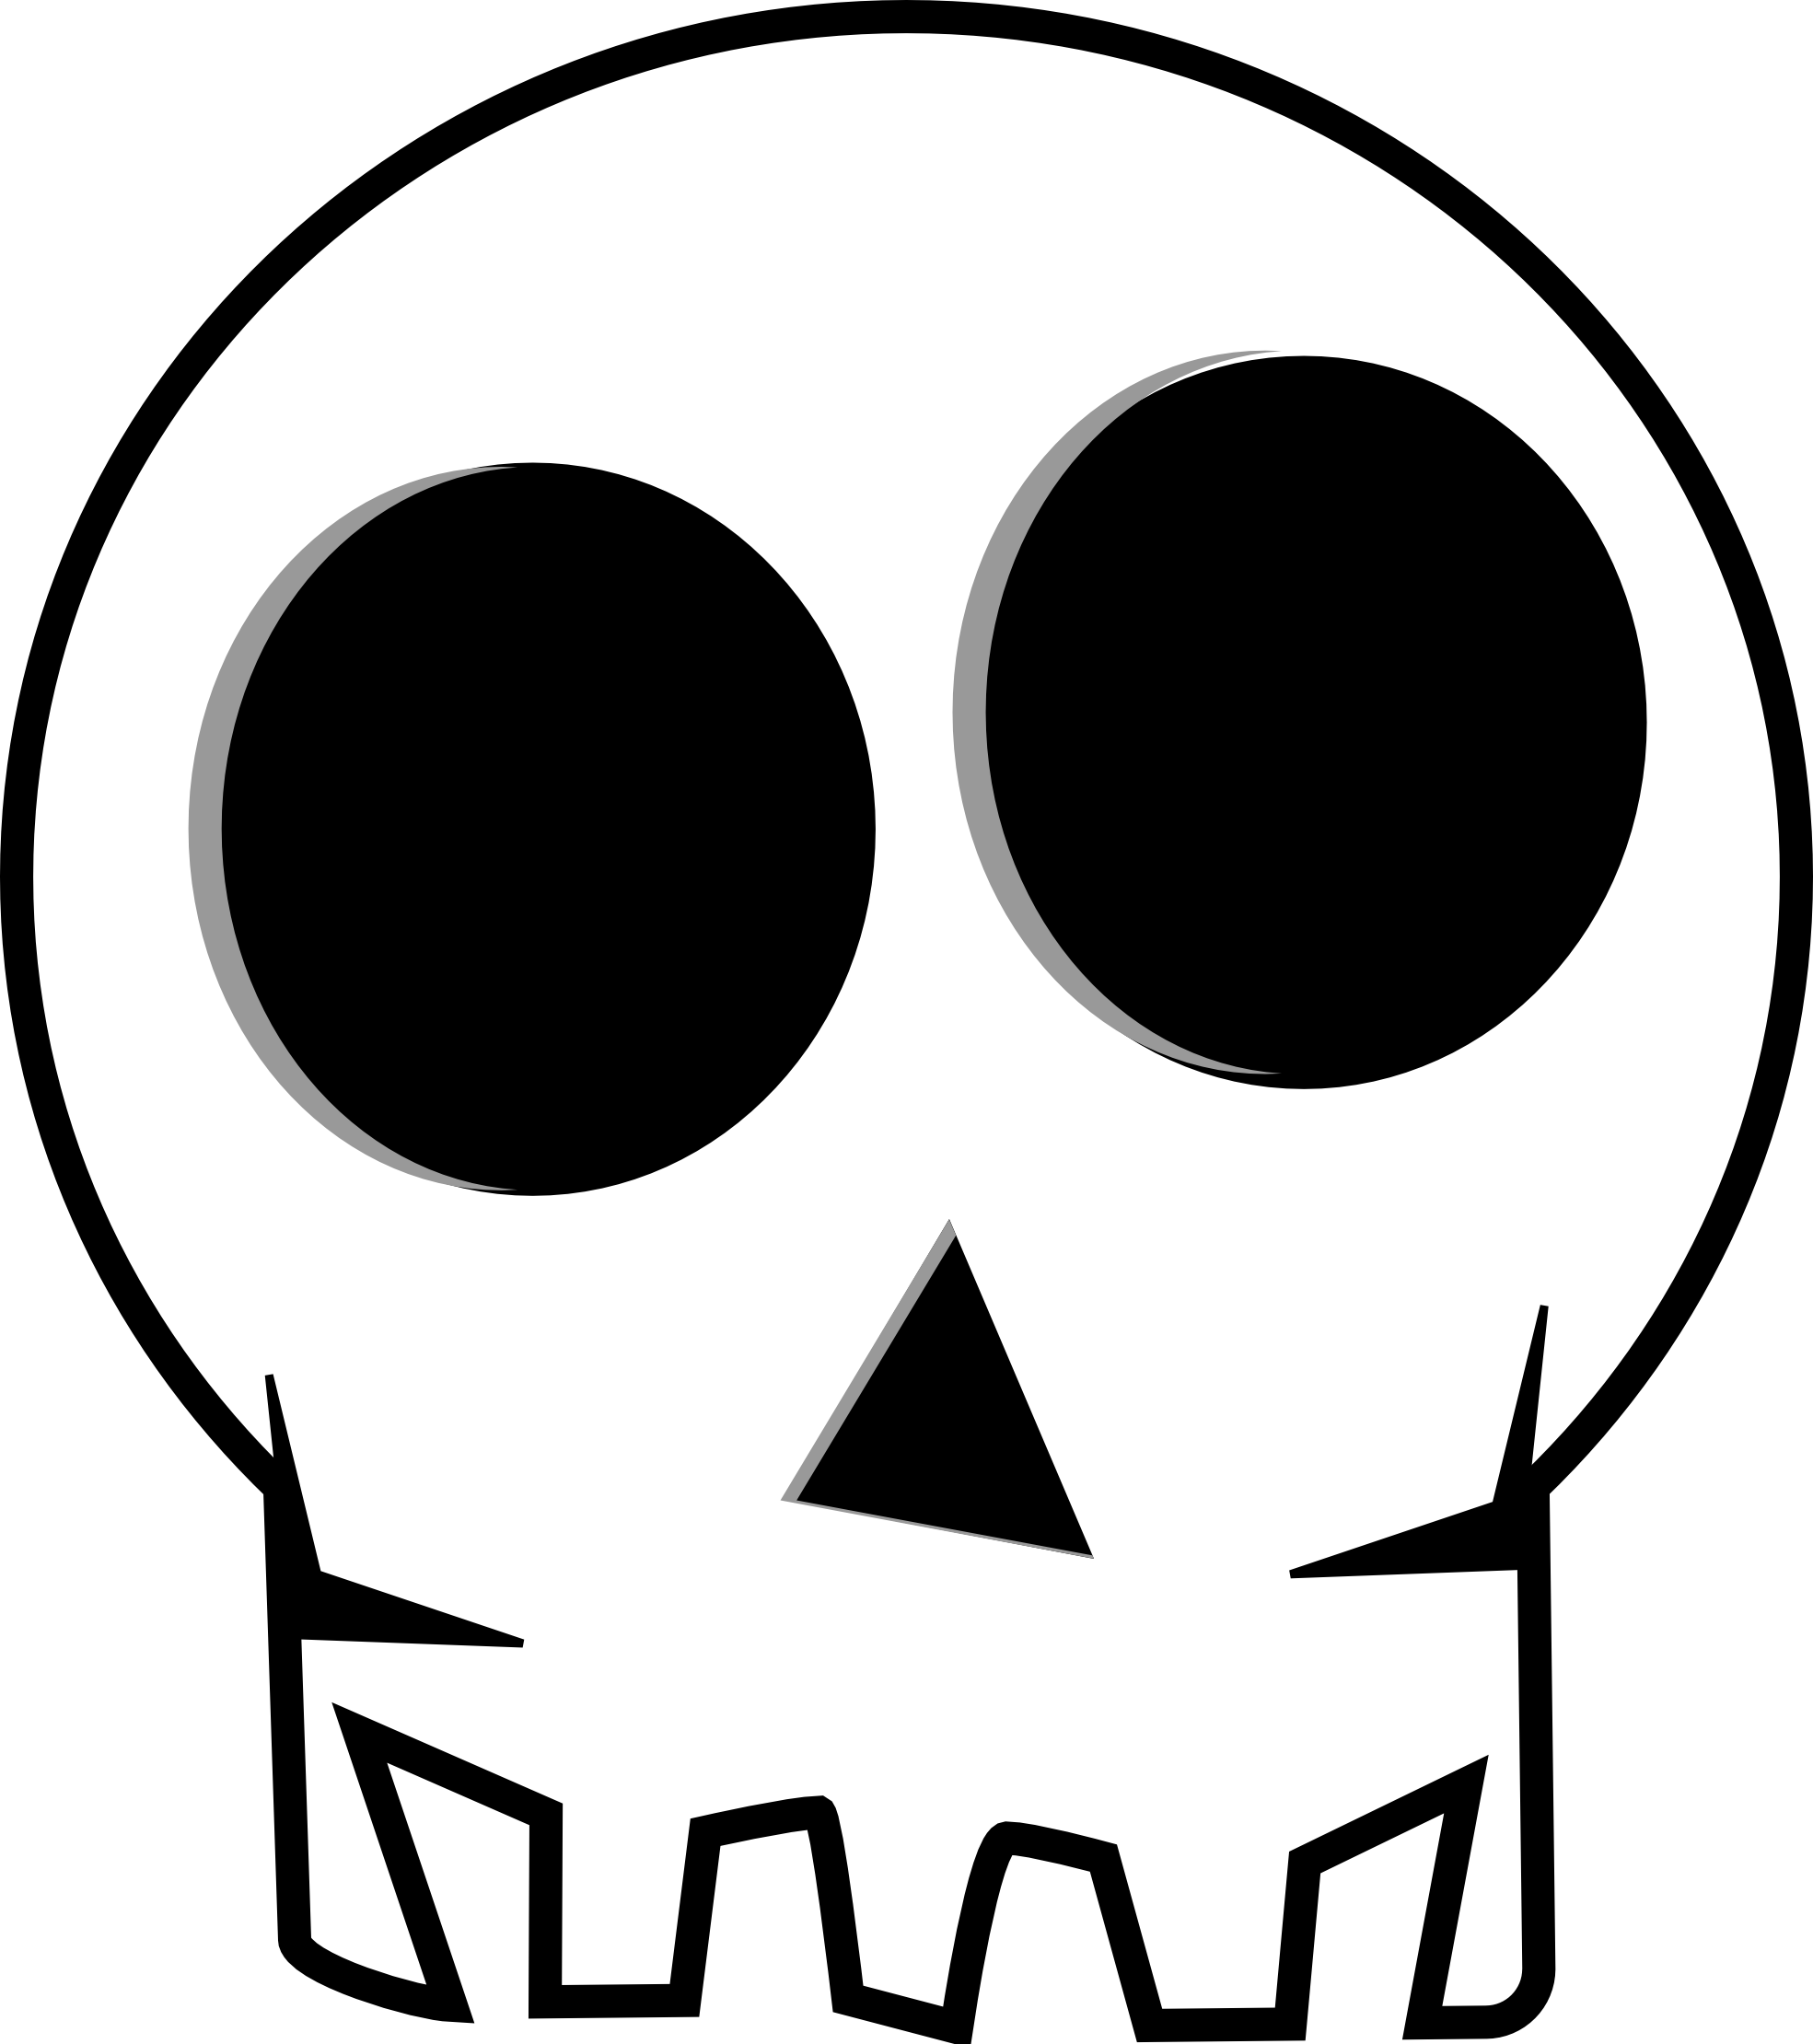 Cartoon Skull Clipart - Clipart Kid